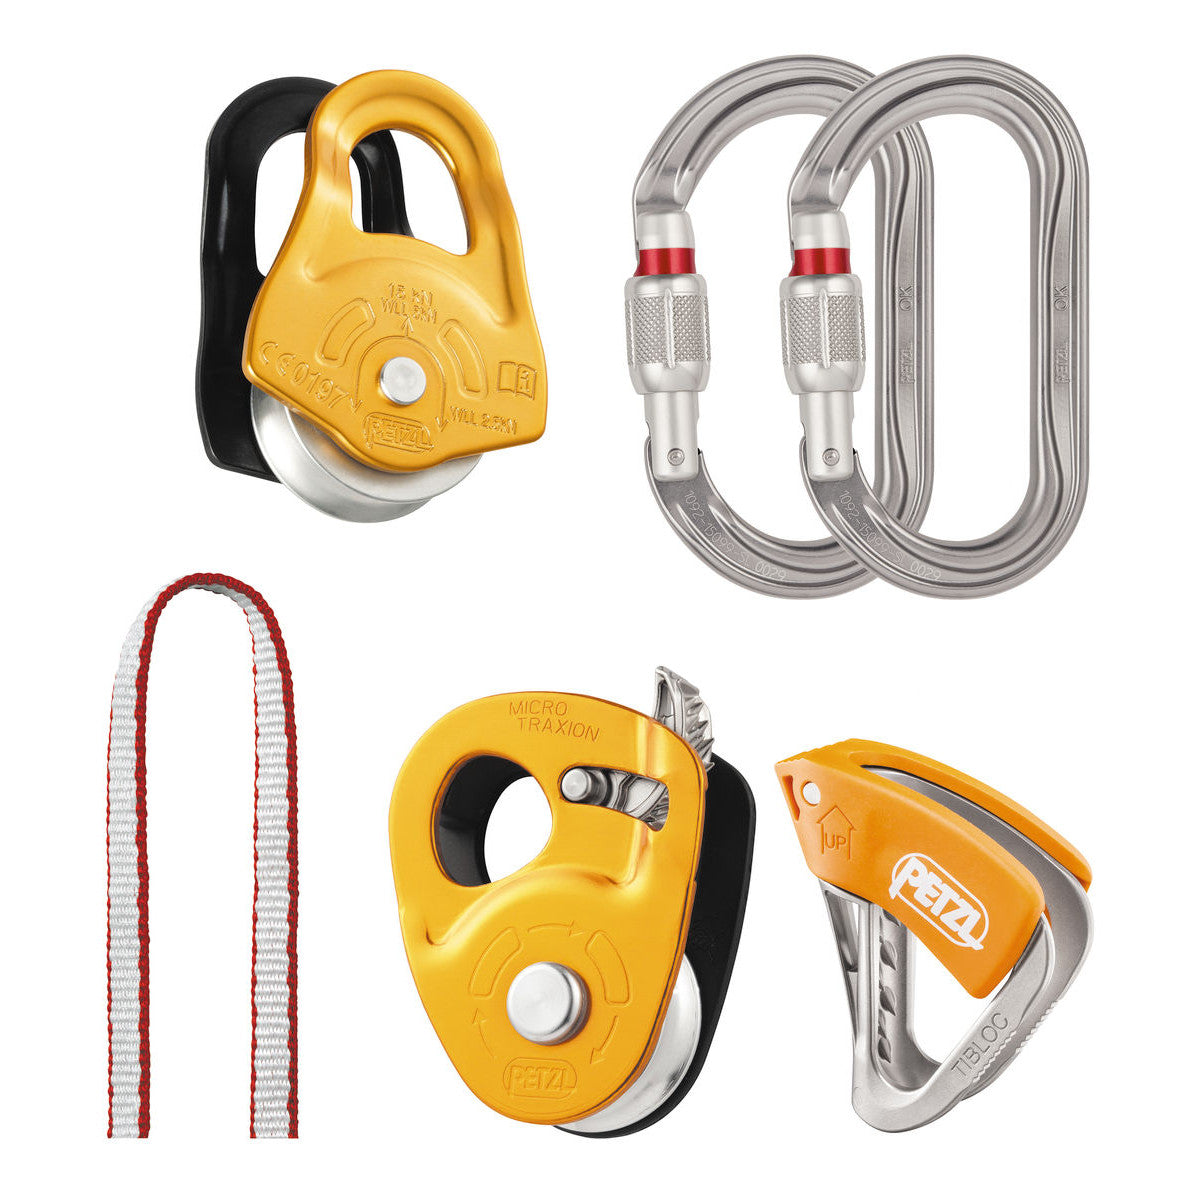 Petzl Crevasse Rescue Kit showing the Partner pulley in Light Orange, the 2 OK Oval Screwgates in silver, the new Tibloc with orange lever , 120cm Dyneema Sling in red, and Micro Traxion in light orange